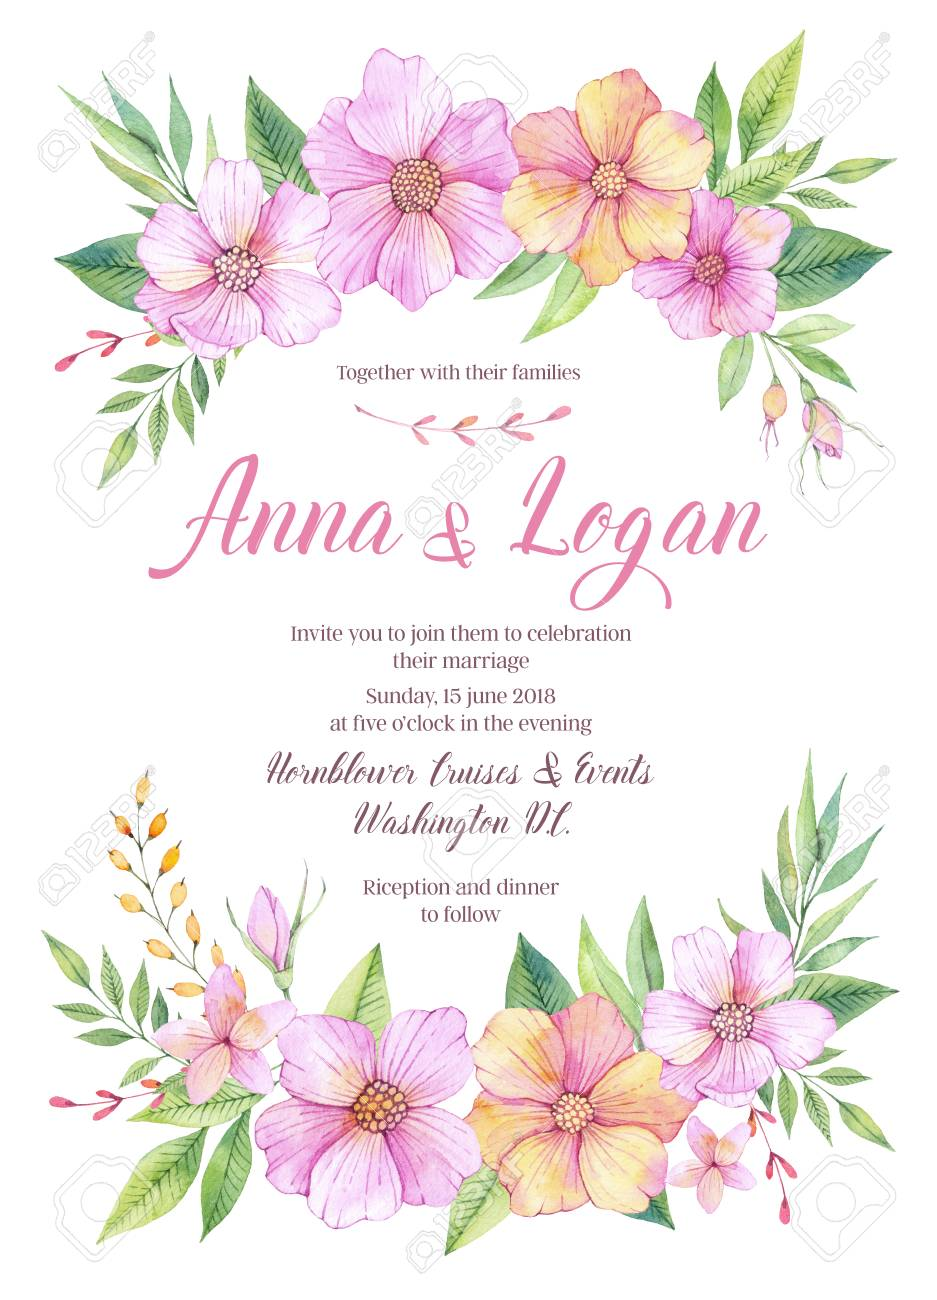 Hand drawn watercolor illustration wedding invitation with leaves wedding invitation with leaves and flowers watercolor ready to use card save the date perfect for invitations greeting cards blogs posters and more stopboris Image collections